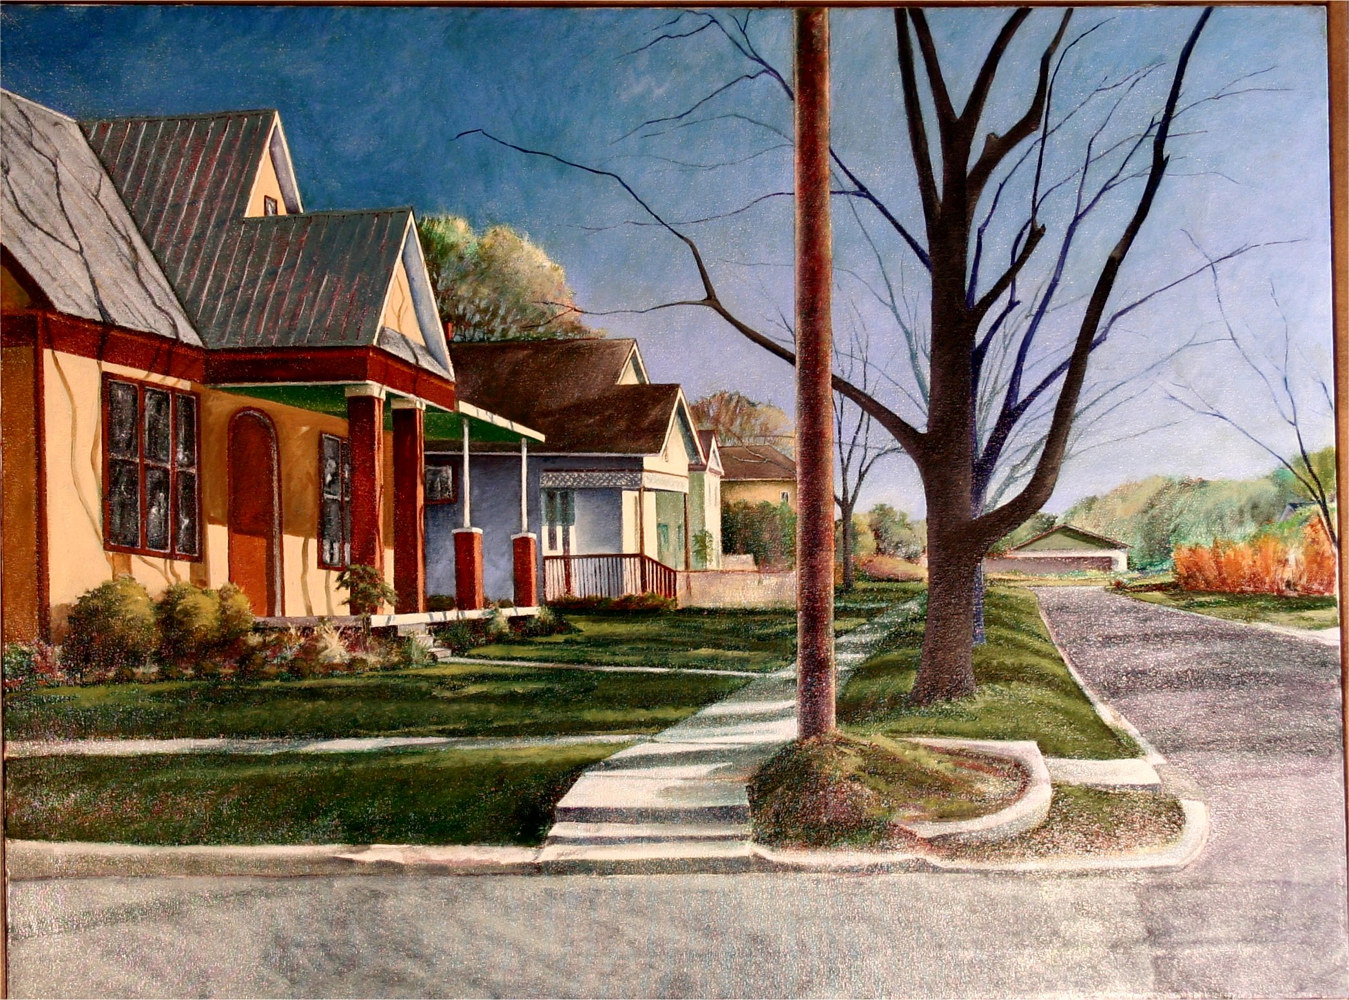 Rock Street Afternoon Georgetown Texas 30x40 by Gary Nowlin